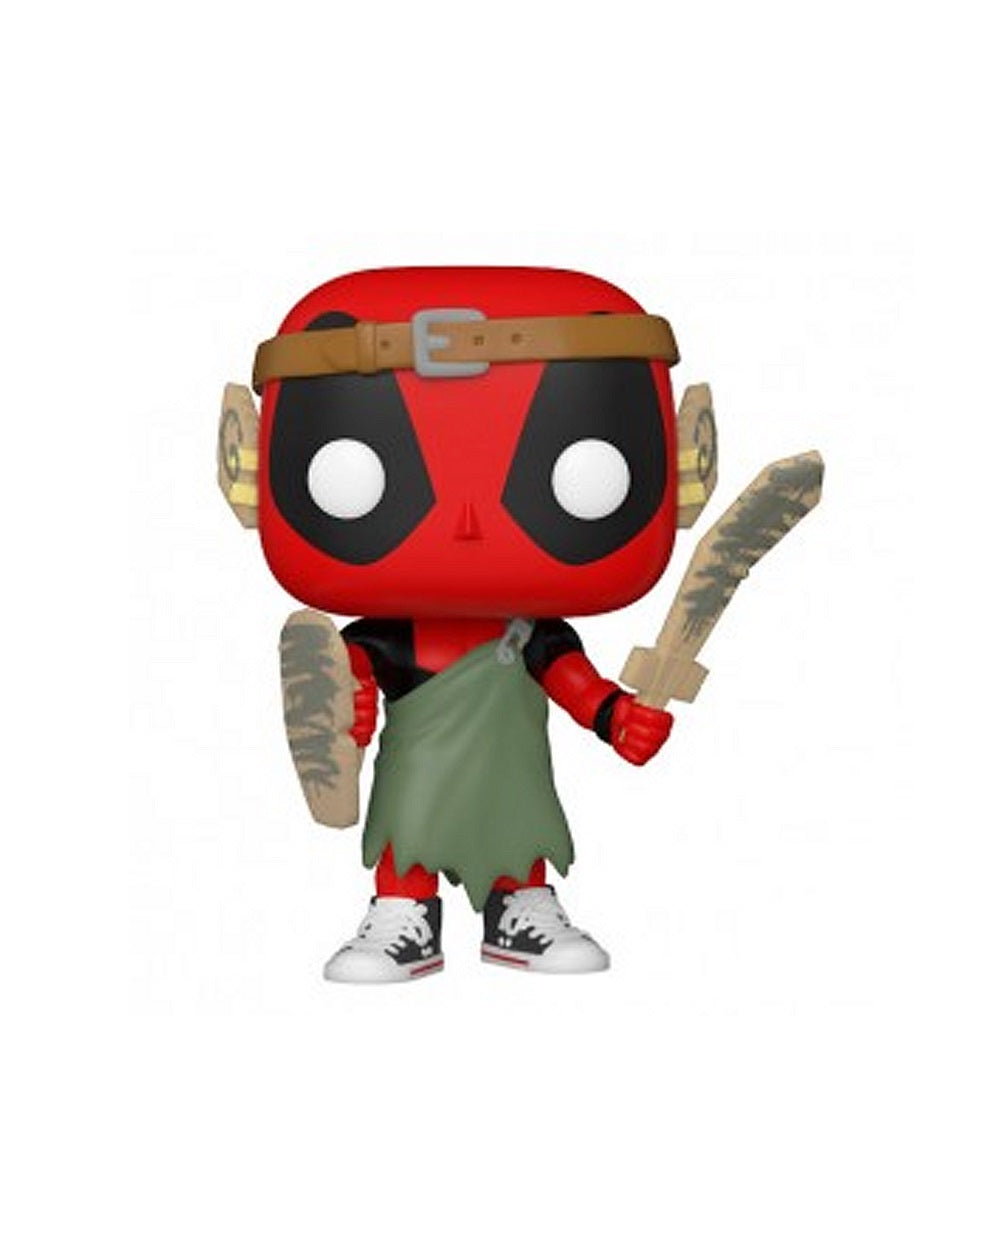 Funko Pop - LARP Deadpool #780 - The Pink a la Mode - Funko - The Pink a la Mode